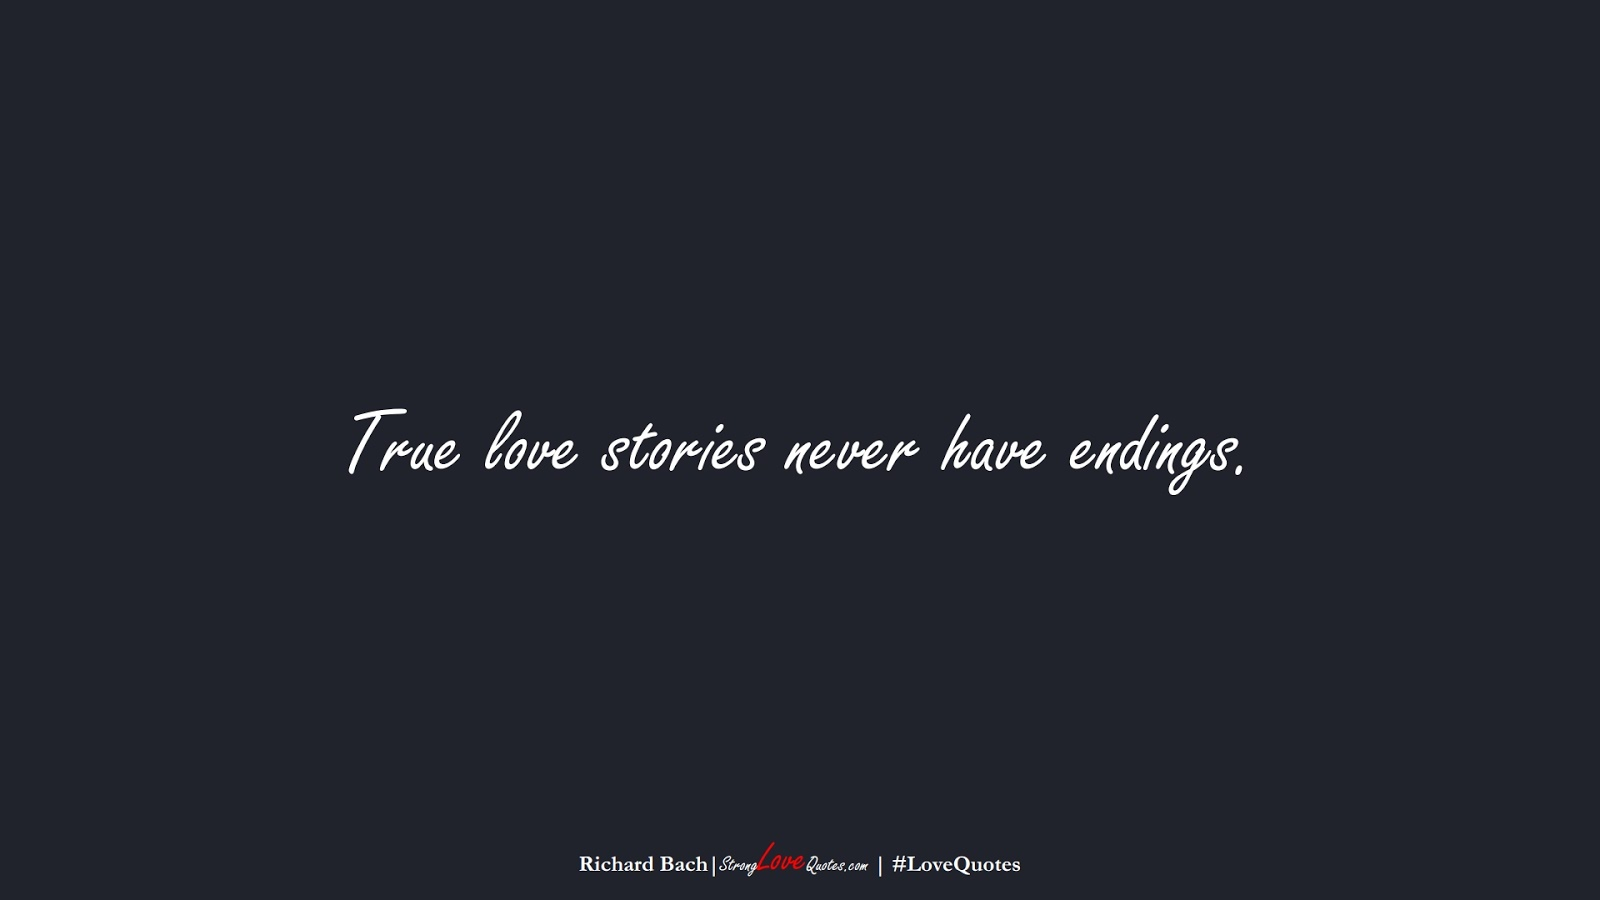 True love stories never have endings. (Richard Bach);  #LoveQuotes